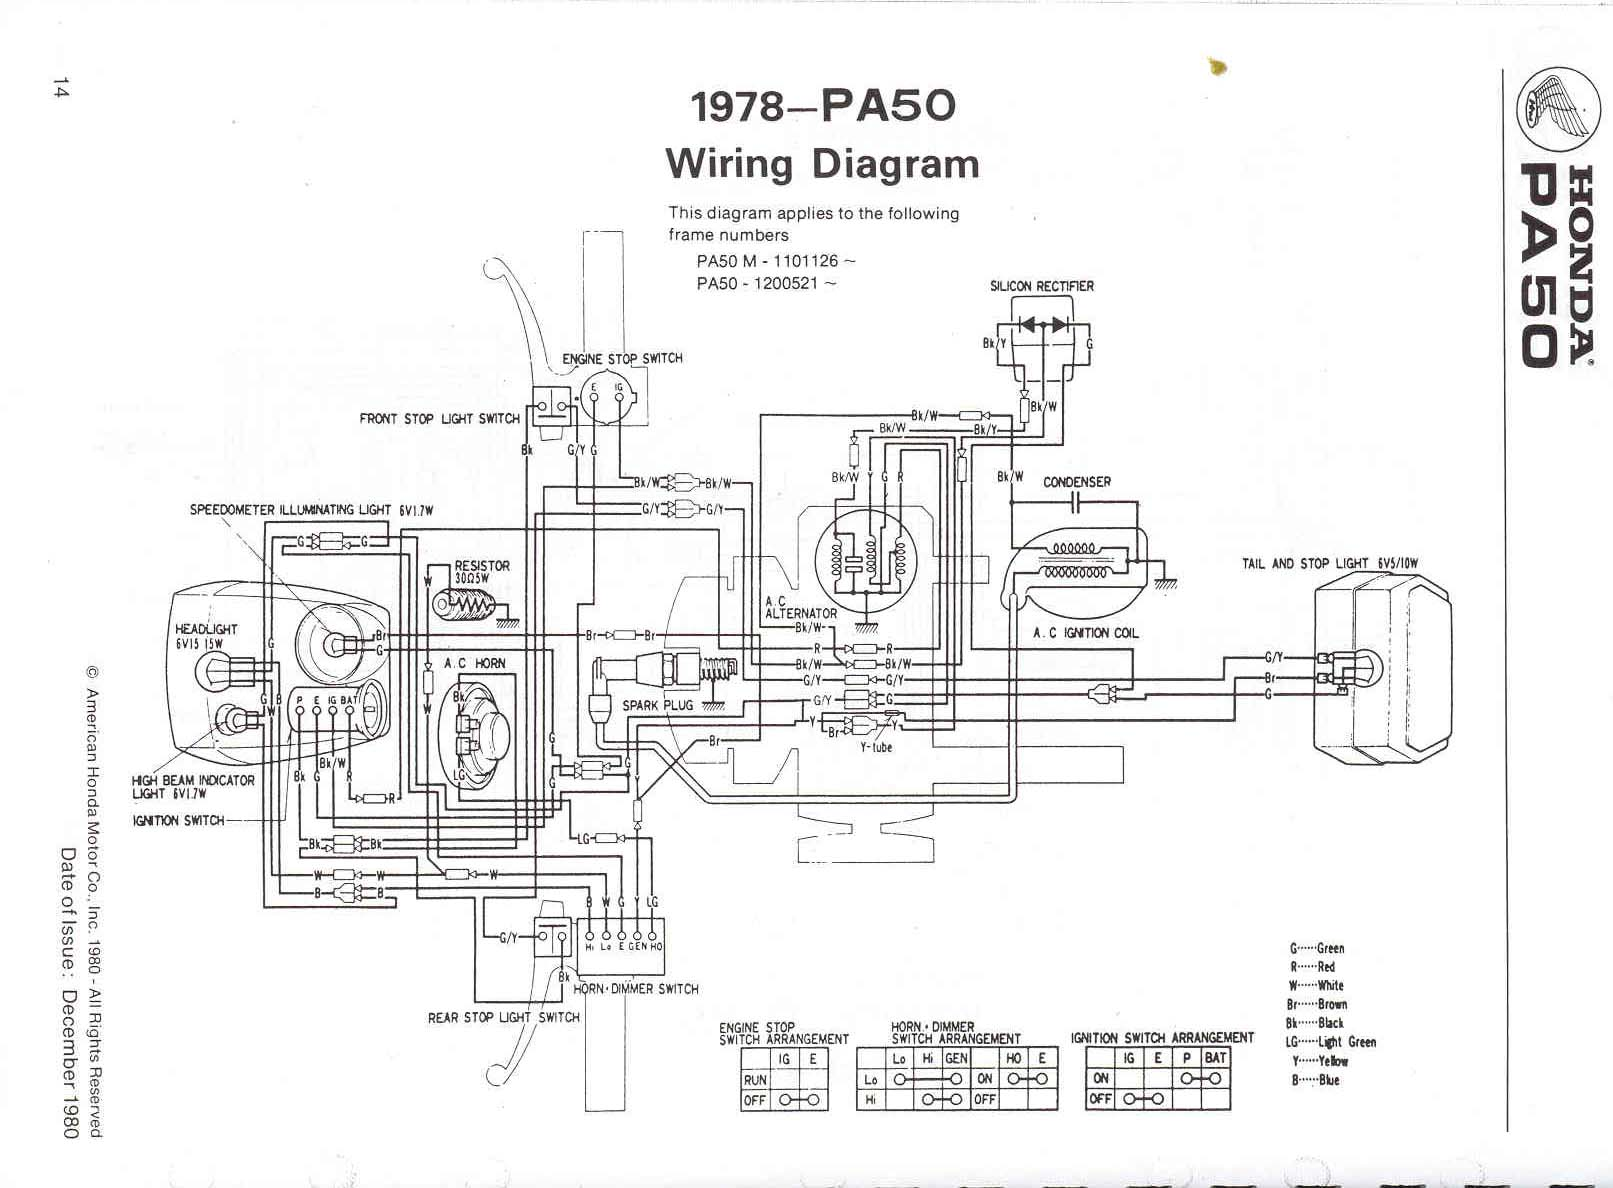 Re: Wiring diagram 1980 Honda PA 50 [by mrmacabre] — Moped